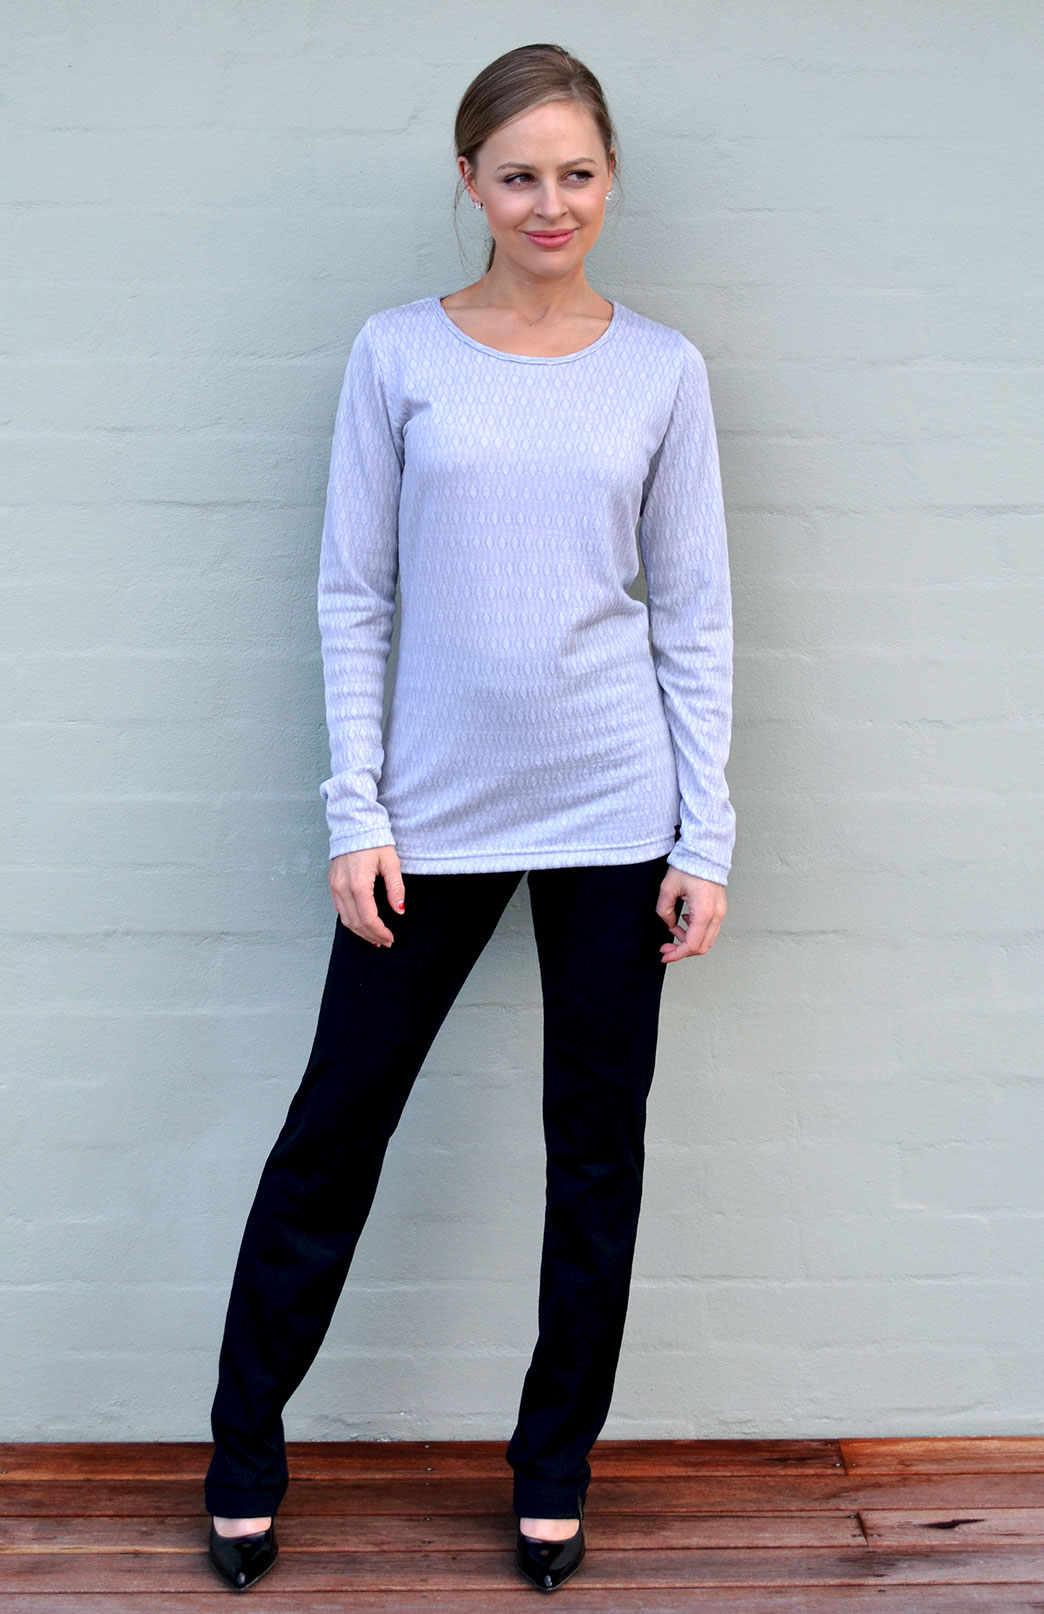 Round Neck Top - Patterned - Women's Soft Grey Patterned Long Sleeve Merino Wool Thermal Fashion Top - Smitten Merino Tasmania Australia